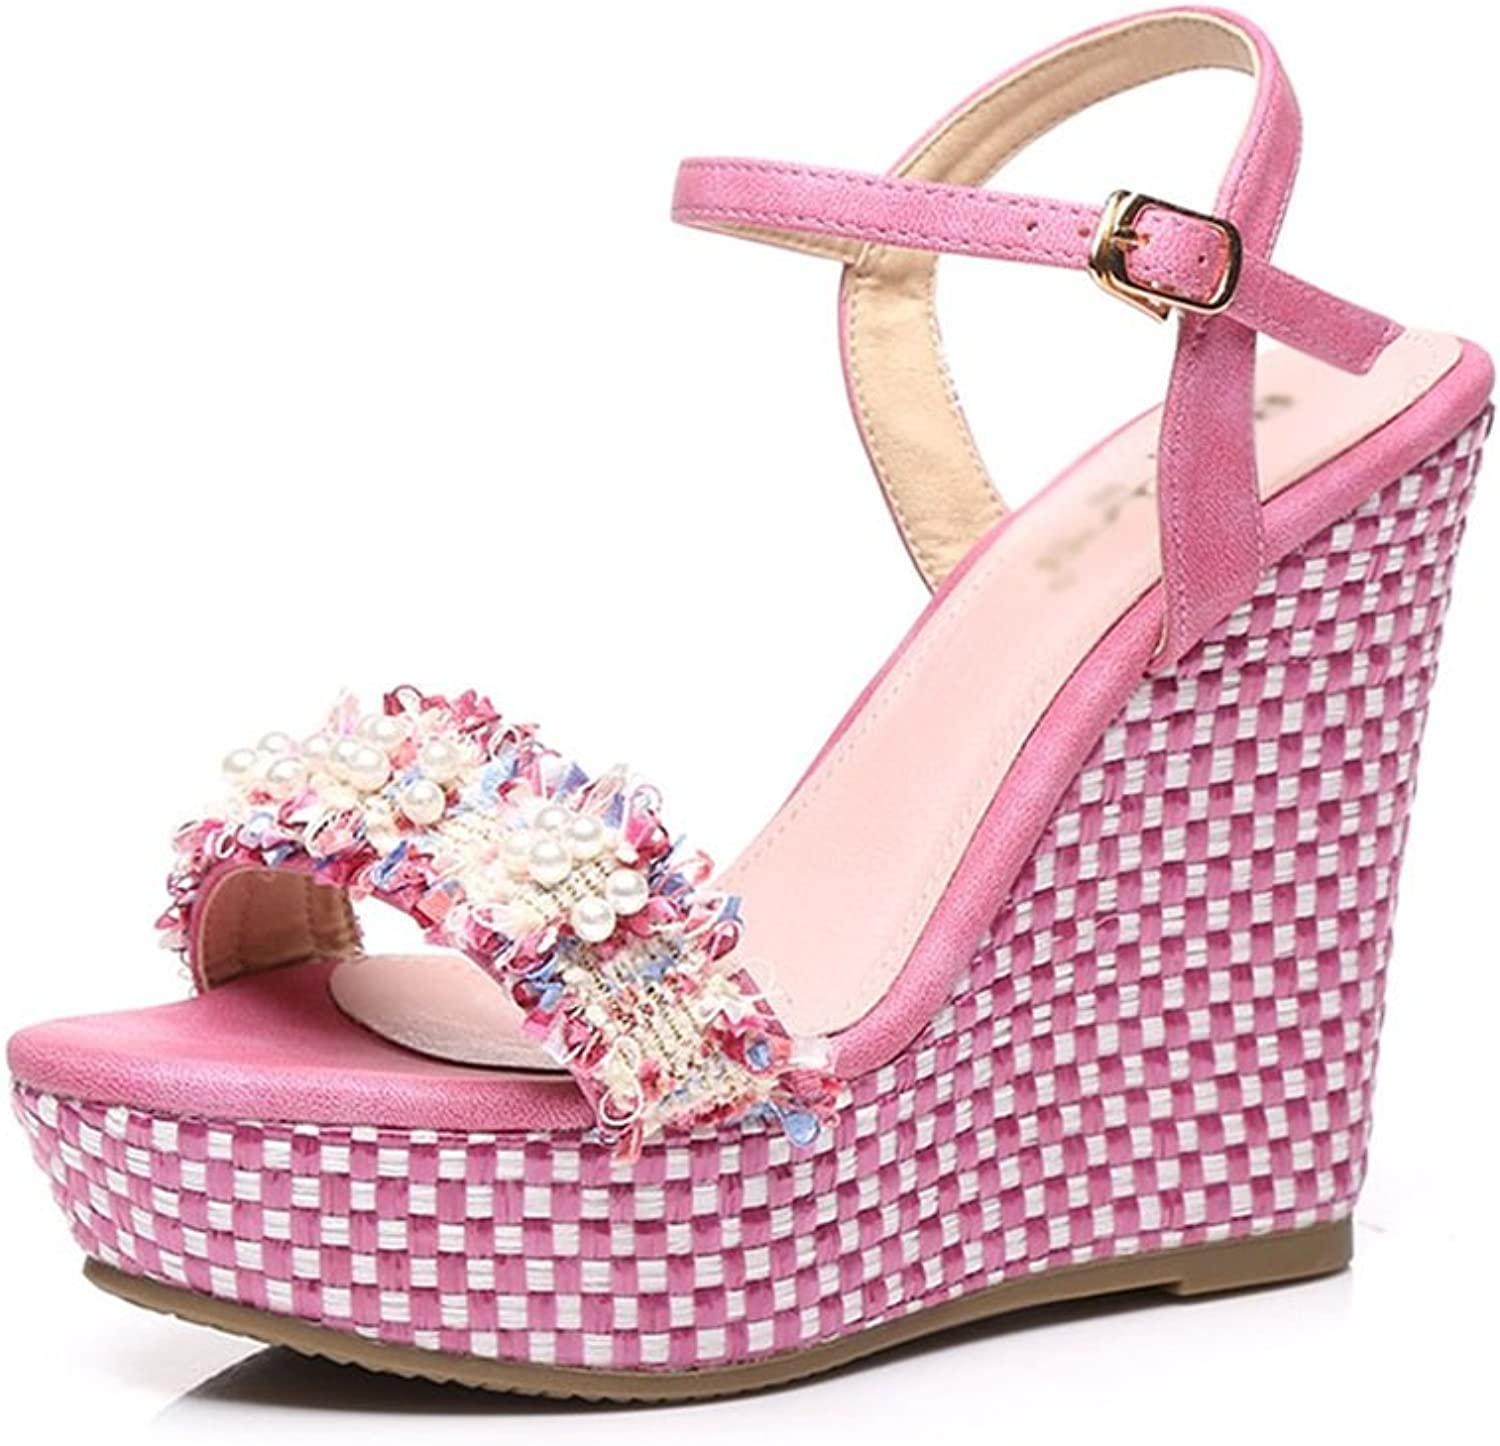 New Summer Slope with Women's sandals high-Heeled Waterproof Platform shoes Pearl Decorative Fashion Small Size Women's shoes (high 9cm and high 12cm) (color   12cm high, Size   39)